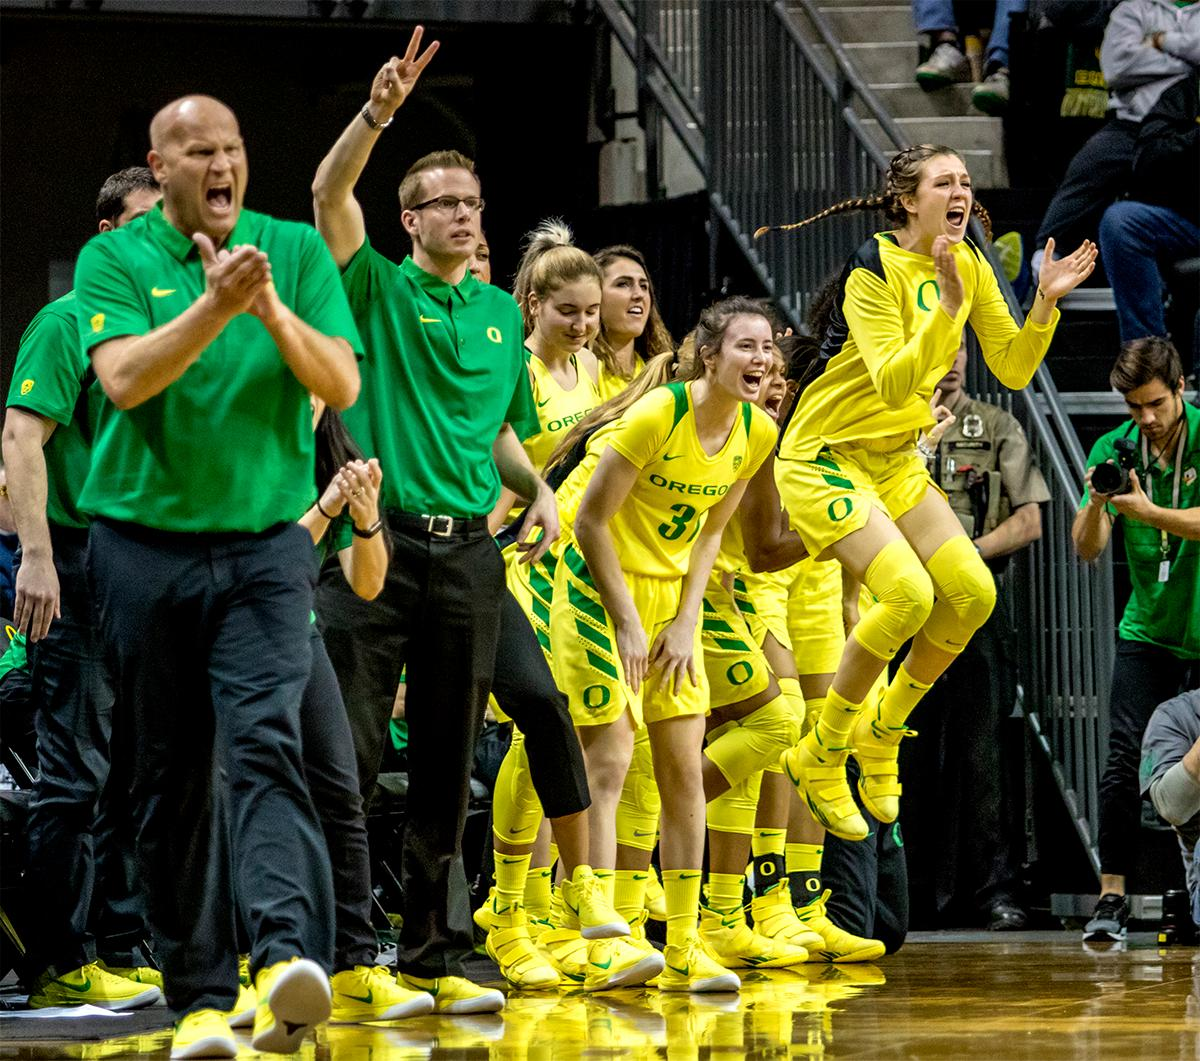 The Duck's celebrate one of Lexi Bando's game ending three-pointers. The Oregon Ducks defeated the USC Trojans 80-74 on Friday at Matthew Knight Arena in a  game that went into double overtime. Lexi Bando sealed the Ducks victory by scoring a three-pointer in the closing of the game. Ruthy Hebard set a new NCAA record of 30 consecutive field goals, the old record being 28. Ruthy Hebard got a double-double with 27 points and 10 rebounds, Mallory McGwire also had 10 rebounds. The ducks had four players in double digits. The Ducks are now 24-4, 13-2 in the Pac-12, and are tied for first with Stanford. Photo by August Frank, Oregon News Lab